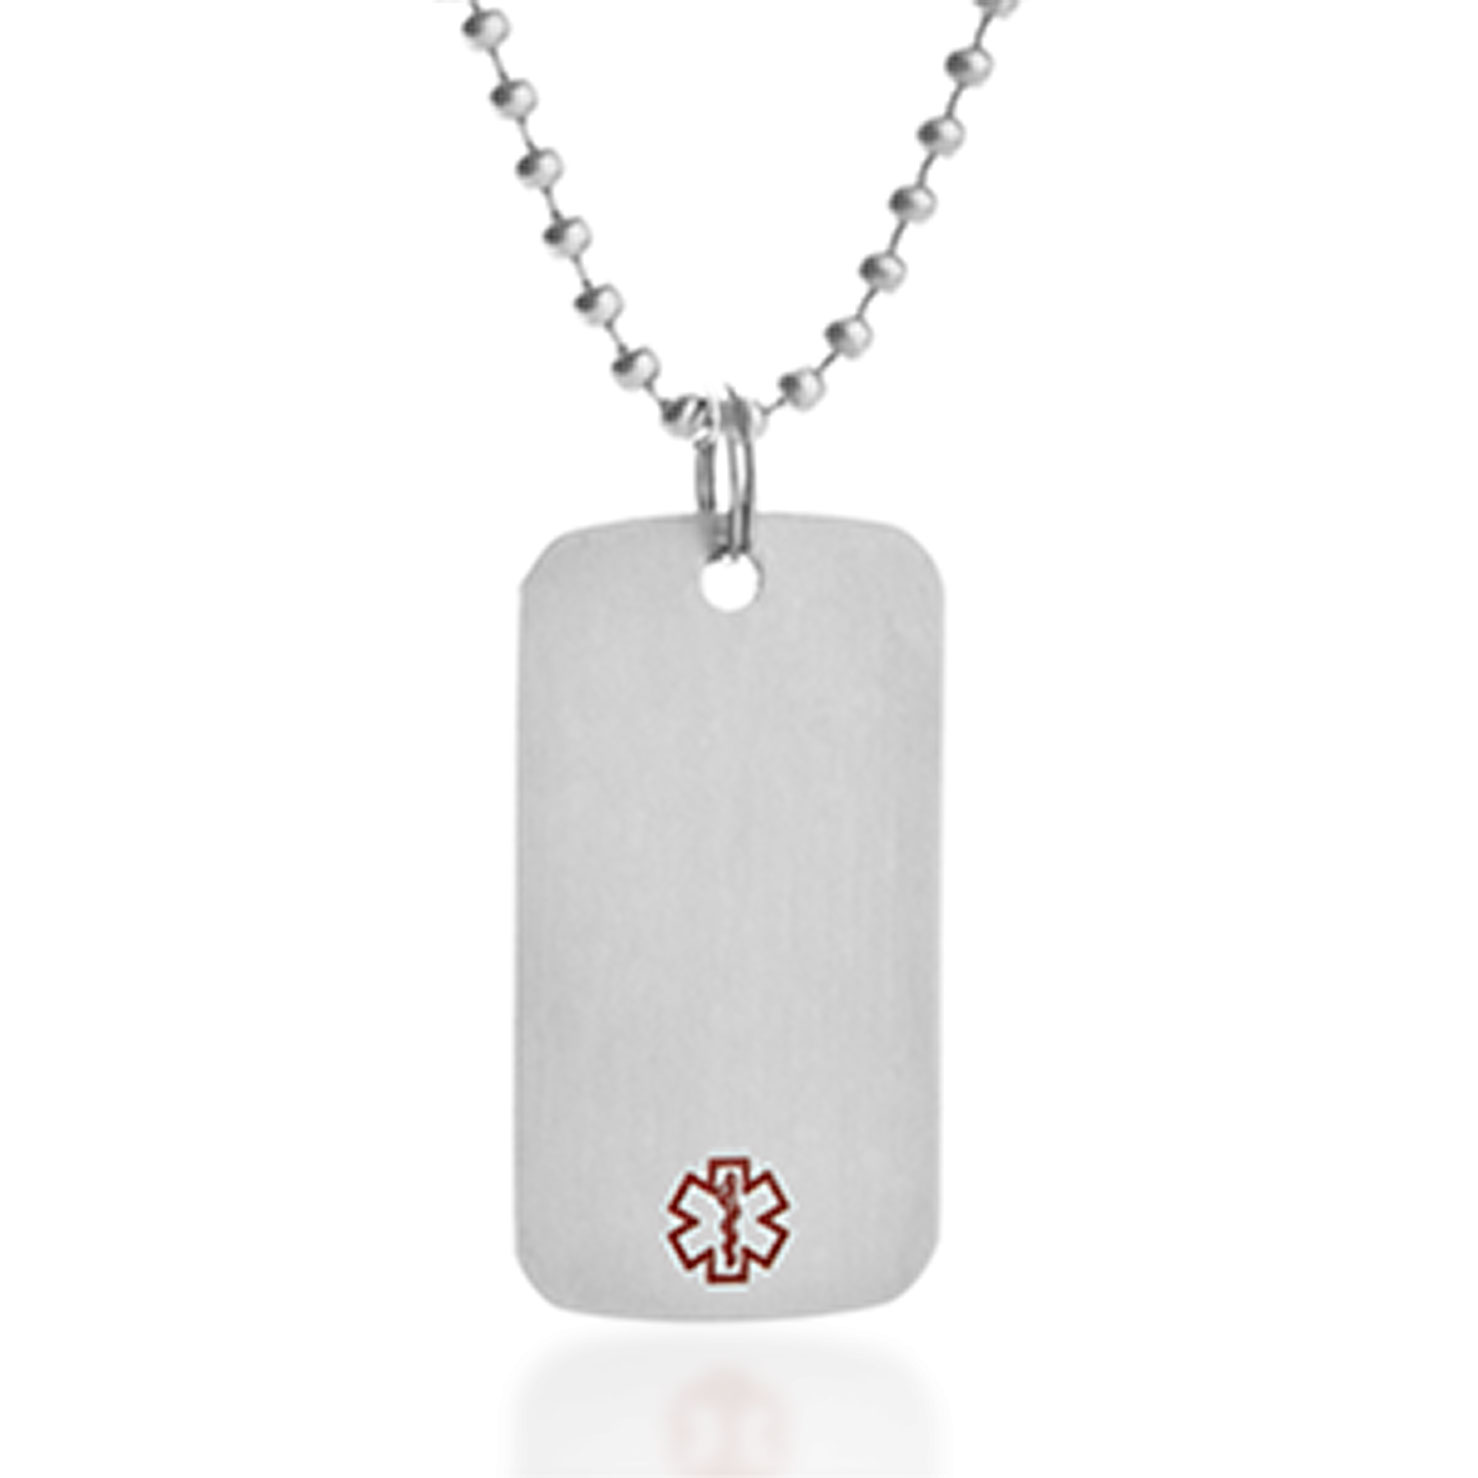 Medical alert necklaces for women medical id necklaces for women cr5165c limited supply medium brushed steel medical dog tag mozeypictures